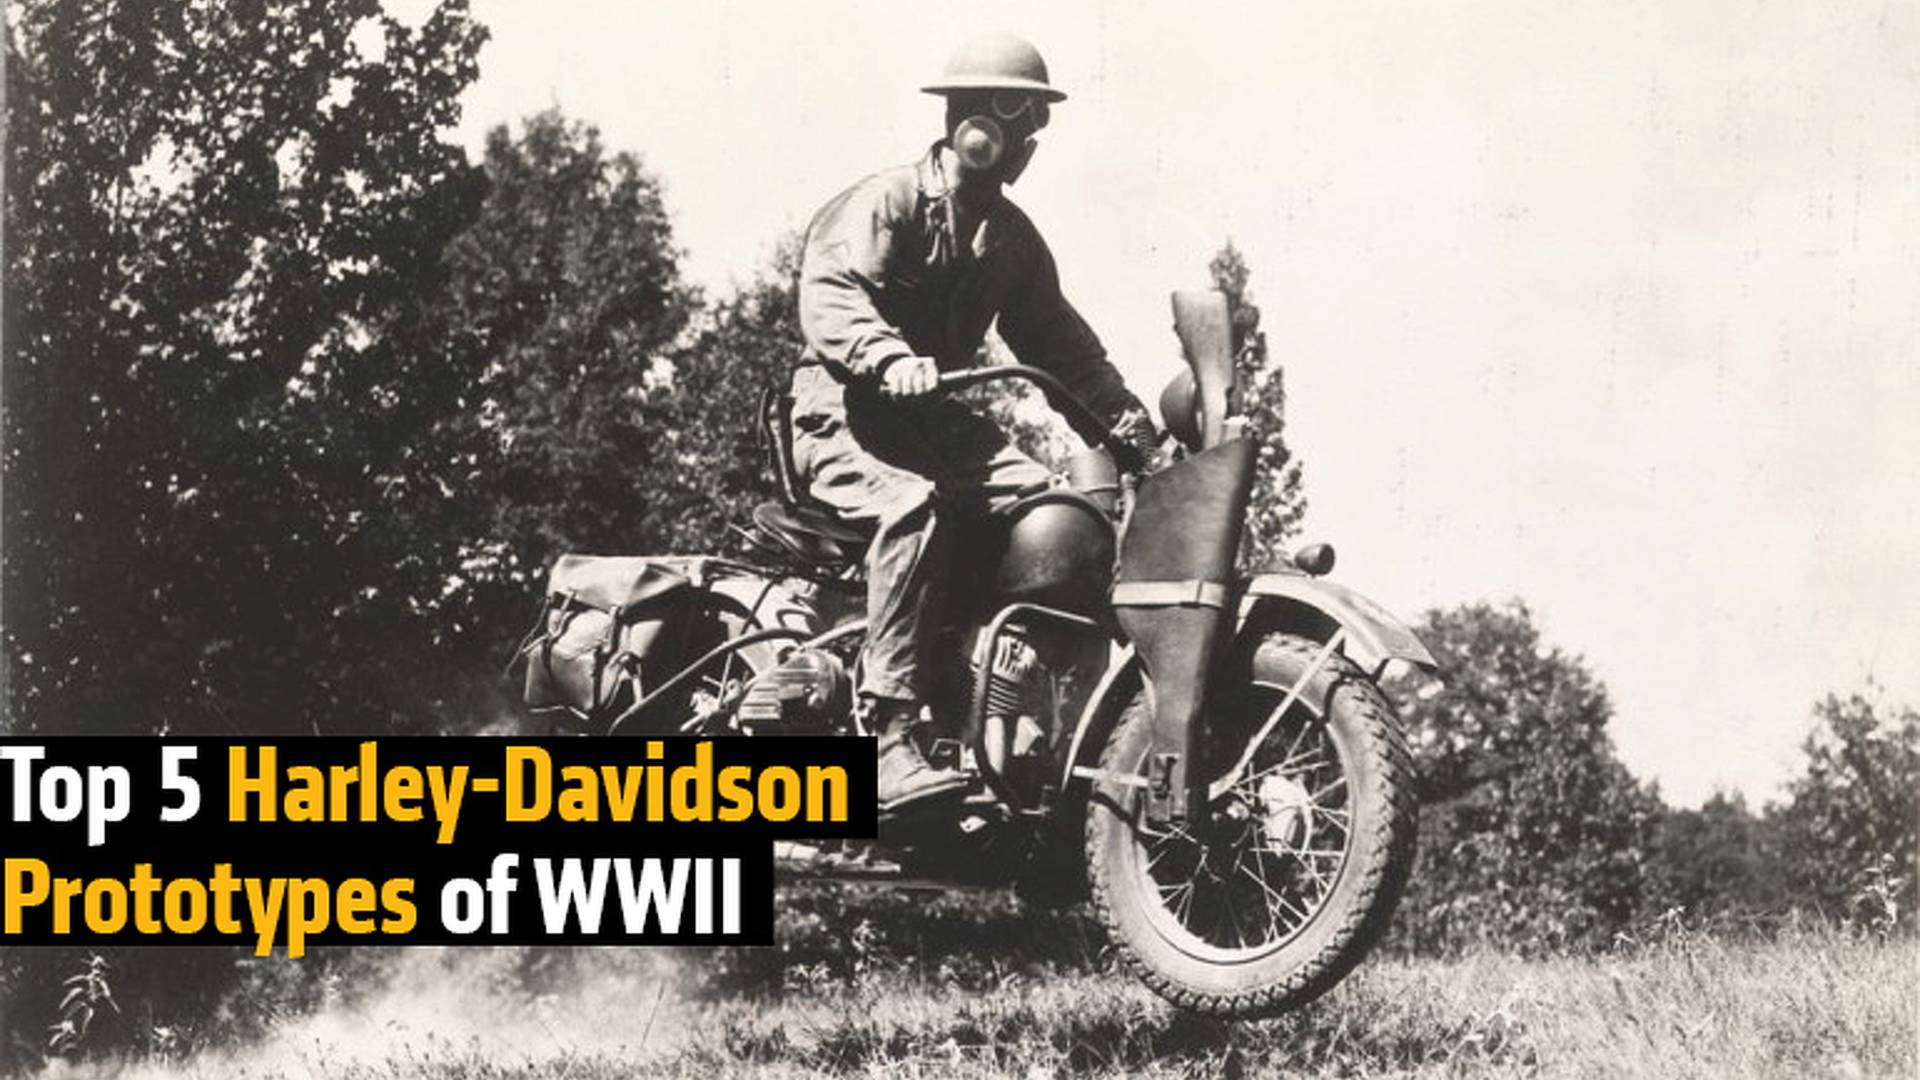 Top 5 Harley-Davidson Prototypes of WWII